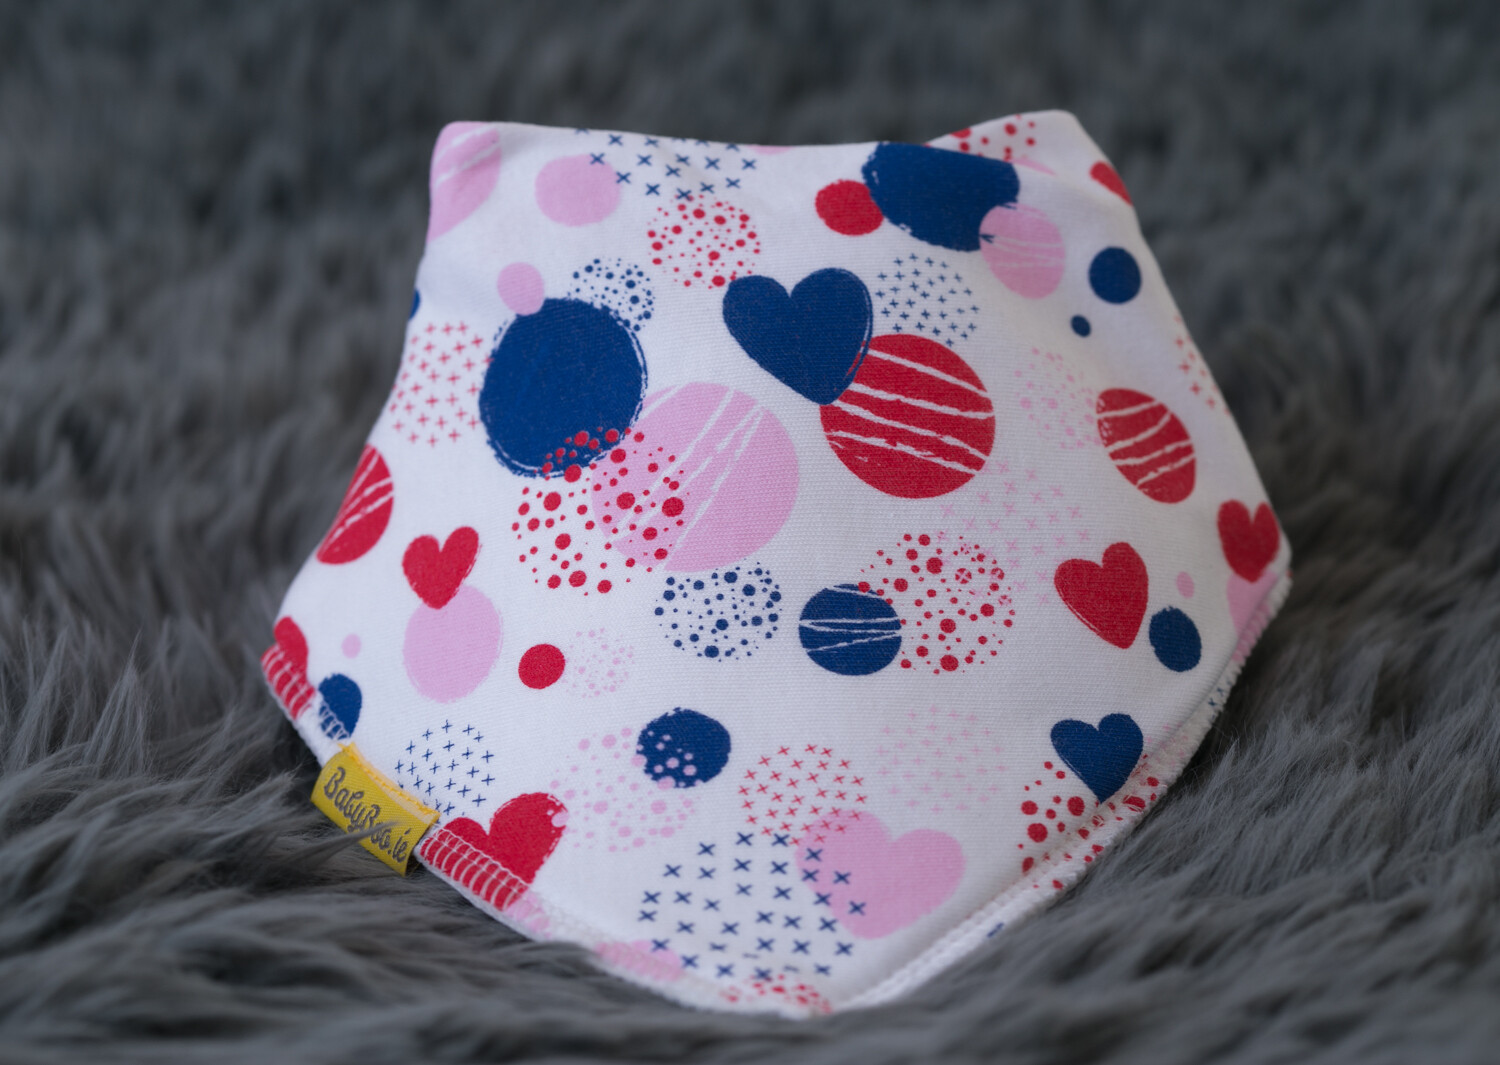 Babyboo ABSTRACT HEARTS ORGANIC COTTON DRIBBLEBOO BANDANA BIB